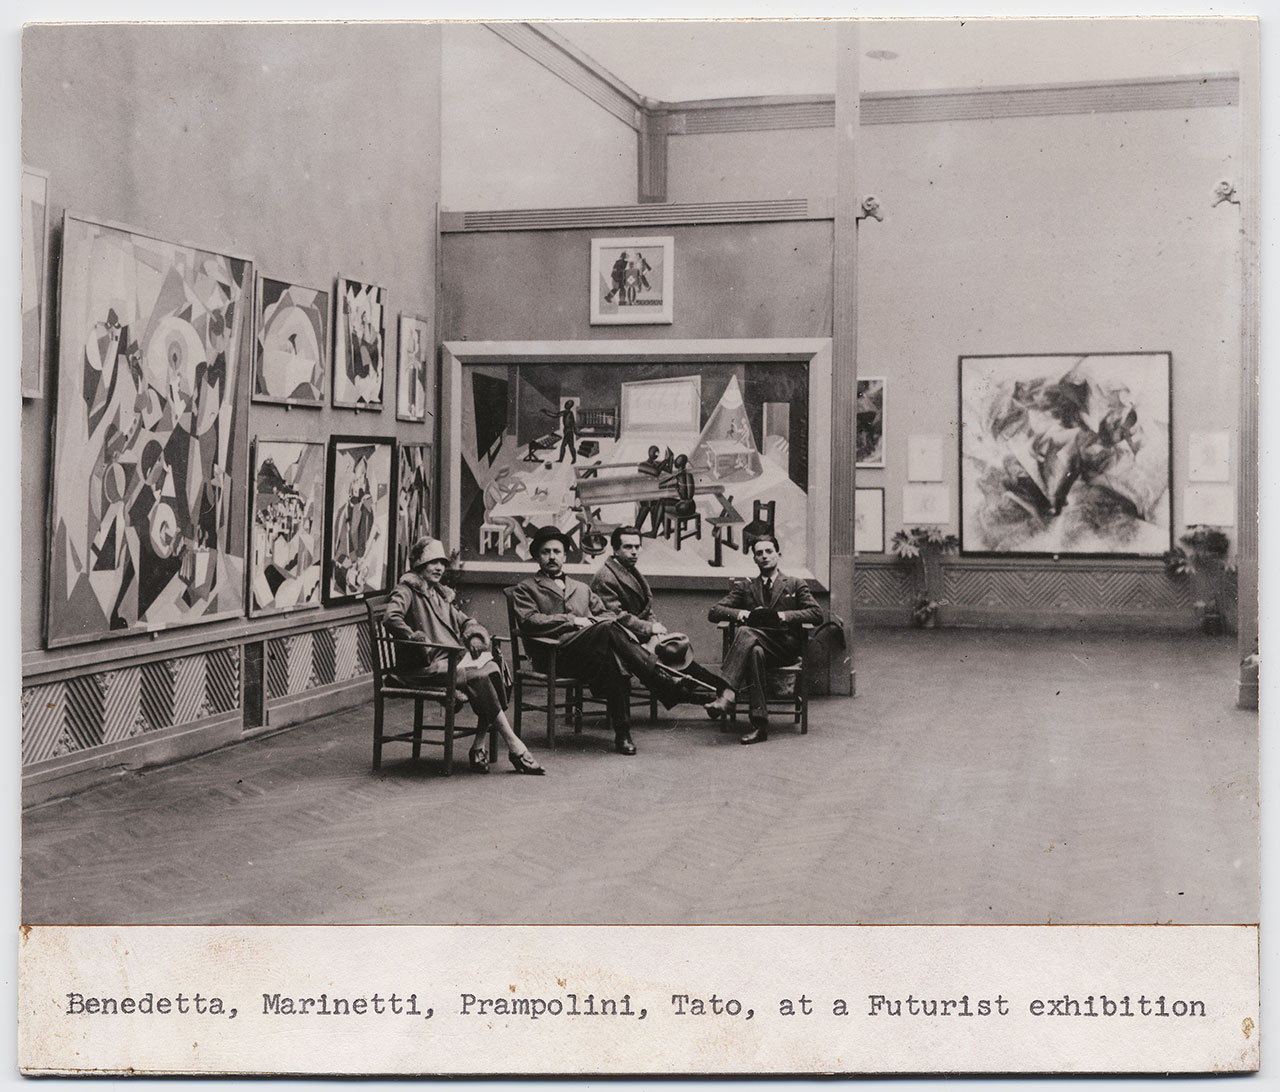 Benedetta Marinetti, Filippo Tommaso Marinetti, Enrico Prampolini and Tato at the Futurist exhibition in at Biennale di Roma in 1925. Among the exhibited works, Dinamismo di un footballer by Umberto Boccioni, 1913. Courtesy General Collection, Beinecke Rare Book and Manuscript Library, Yale University, New Haven.